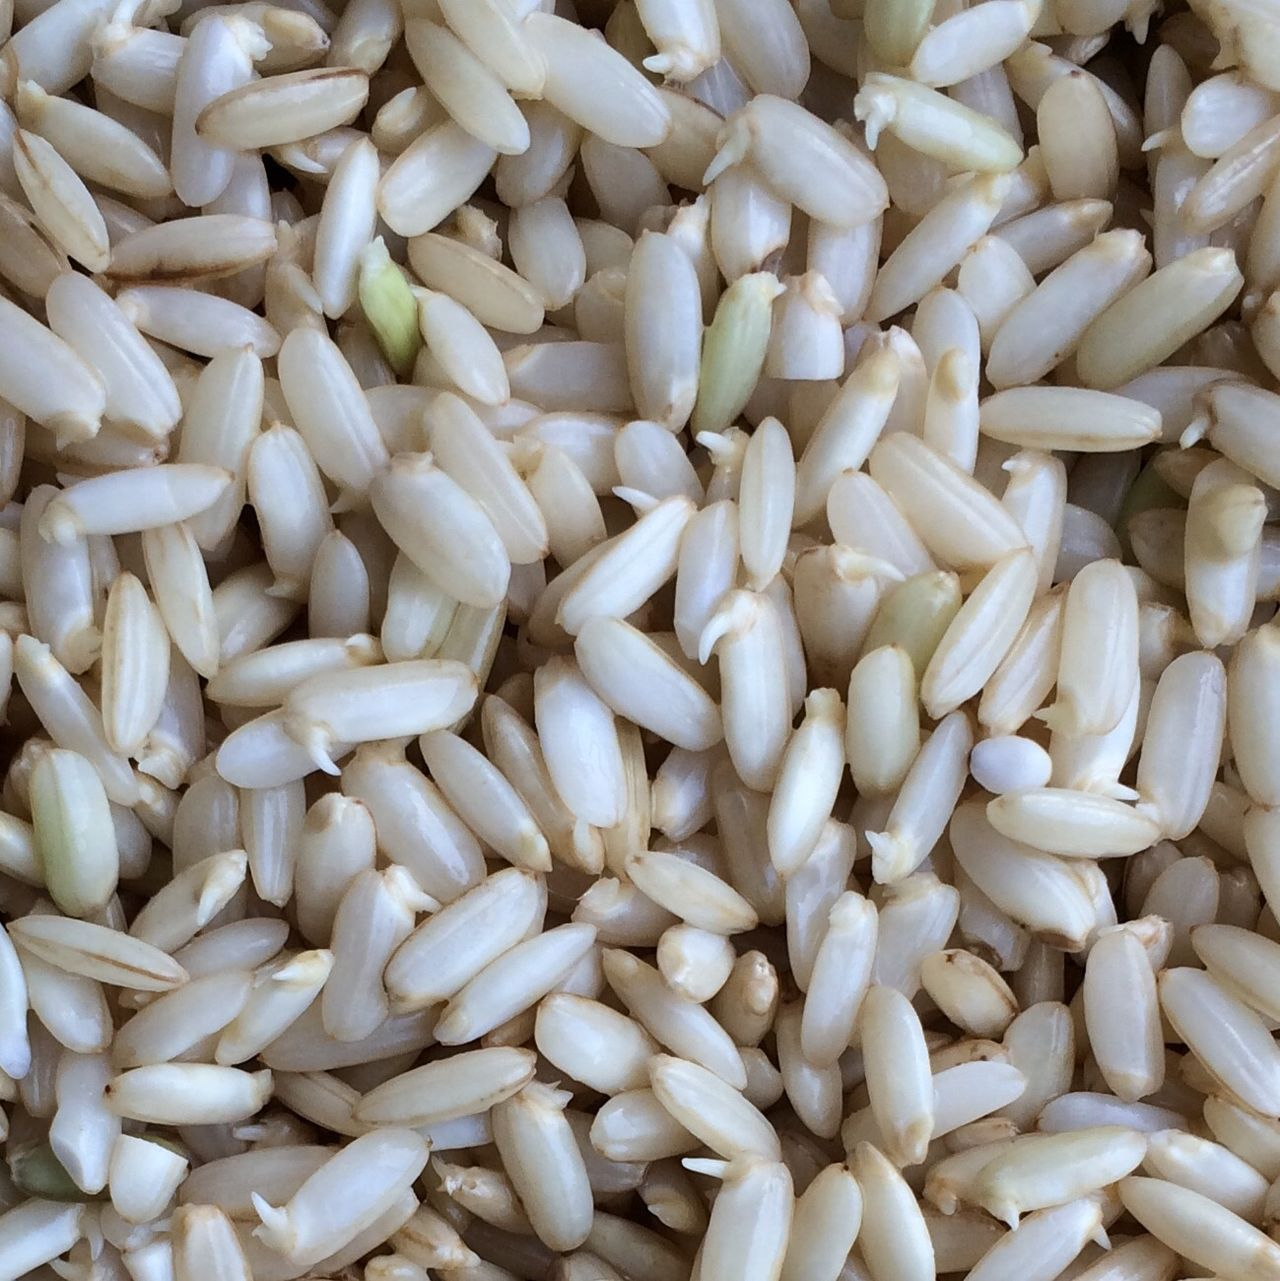 Nerd food 2.0, sprouted rice! Healthy Food Nutrition Germinated Rice